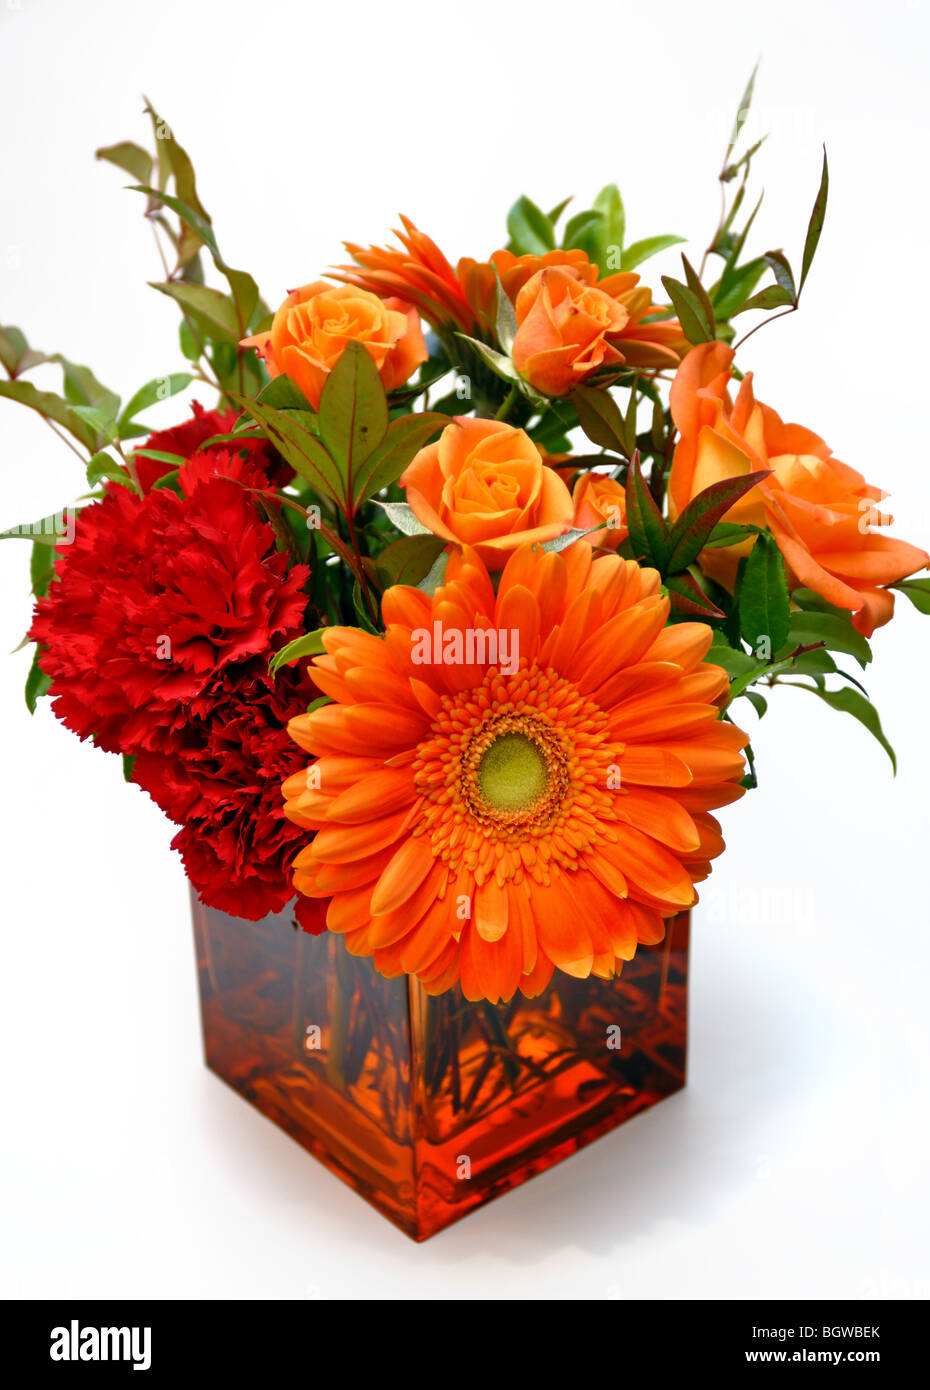 A colorful orange flower arrangement containing daisies and roses a colorful orange flower arrangement containing daisies and roses in a square glass vase reviewsmspy